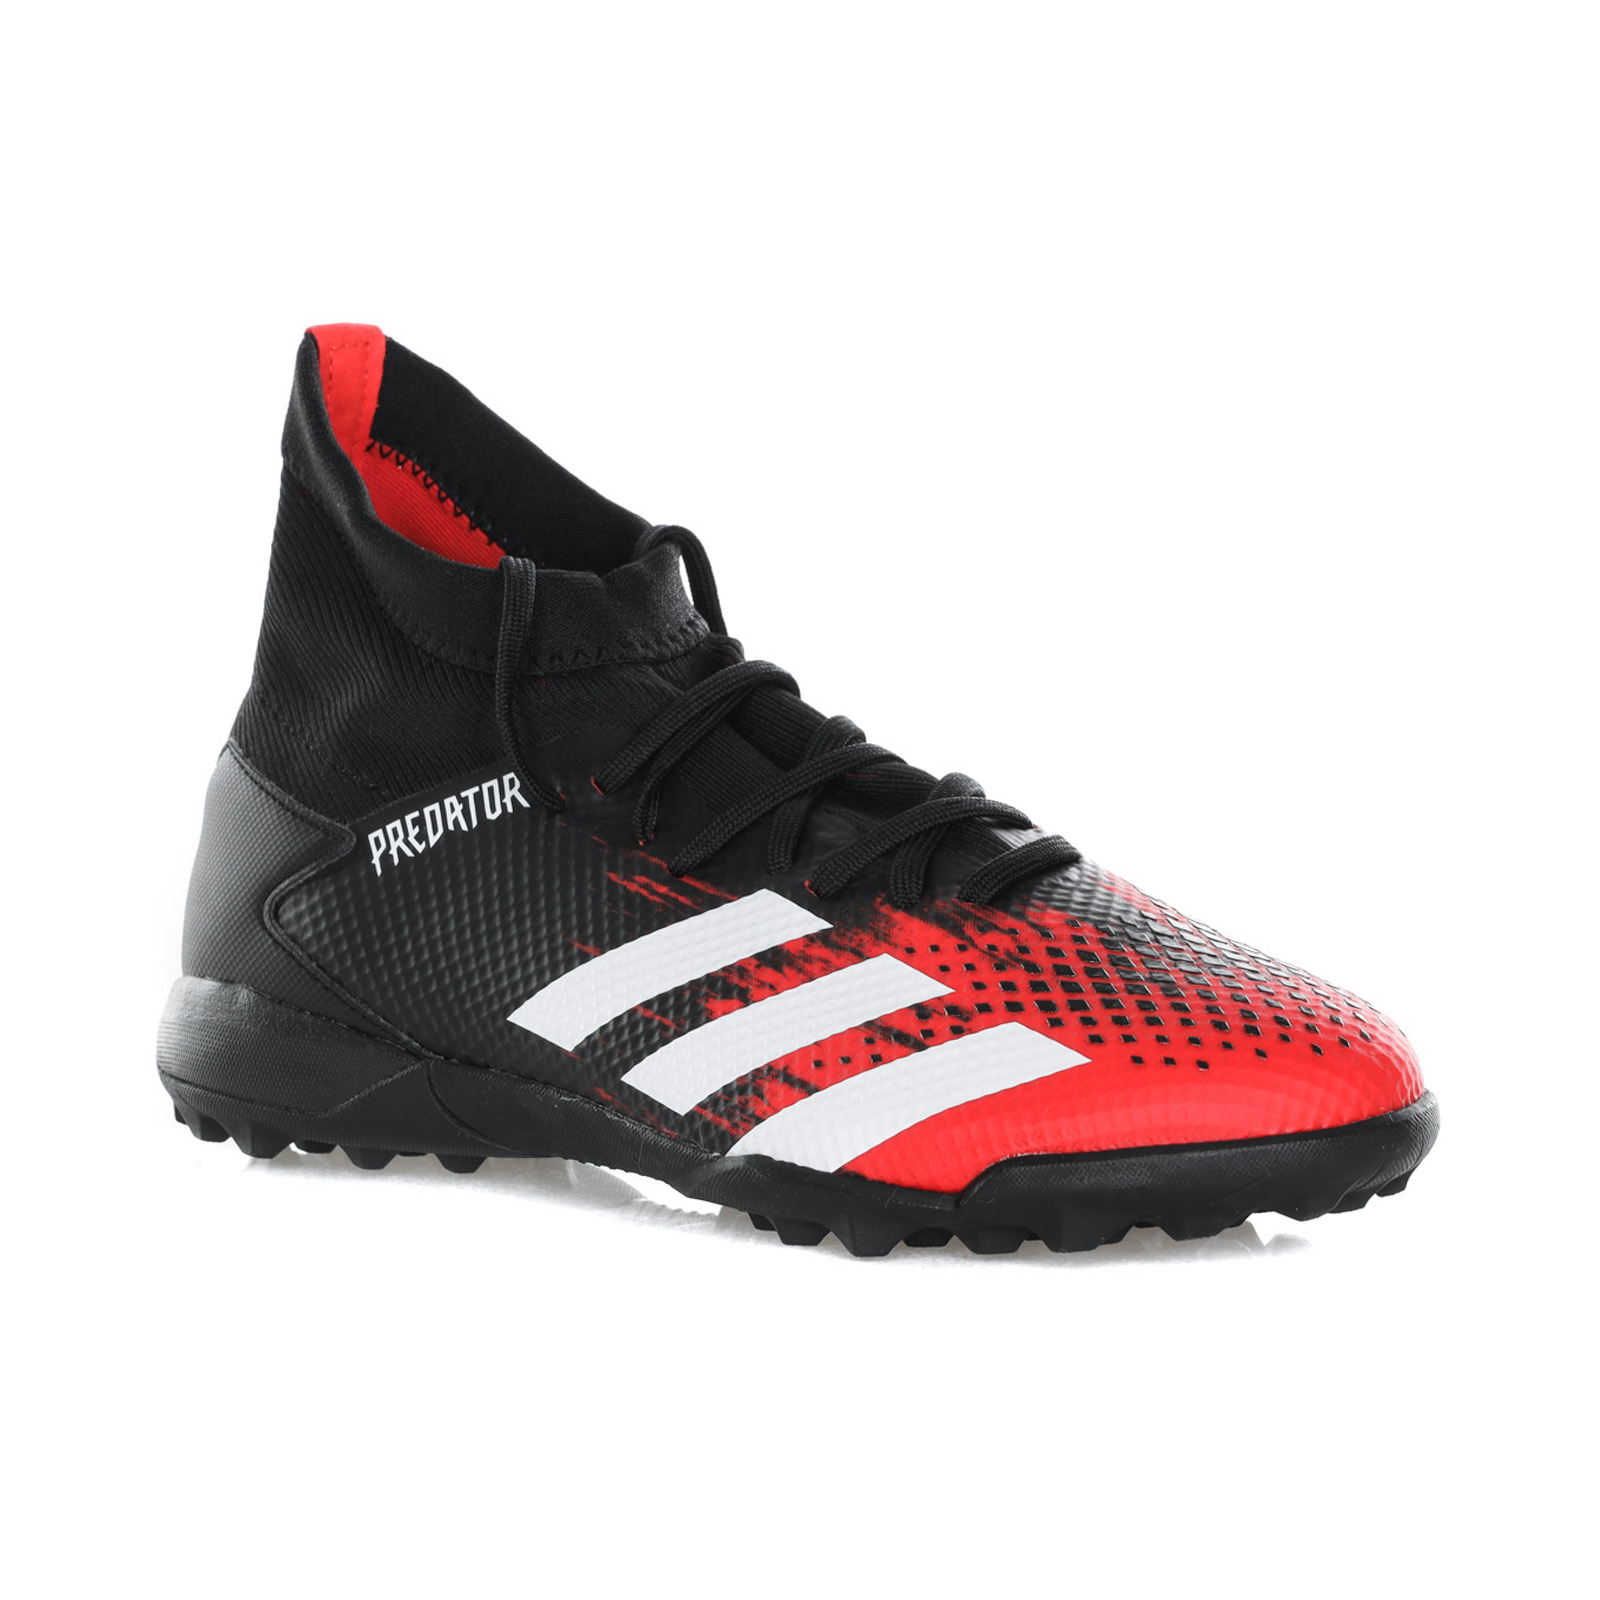 ADIDAS | Football boot | EF2208CBLACK/FTWWHT